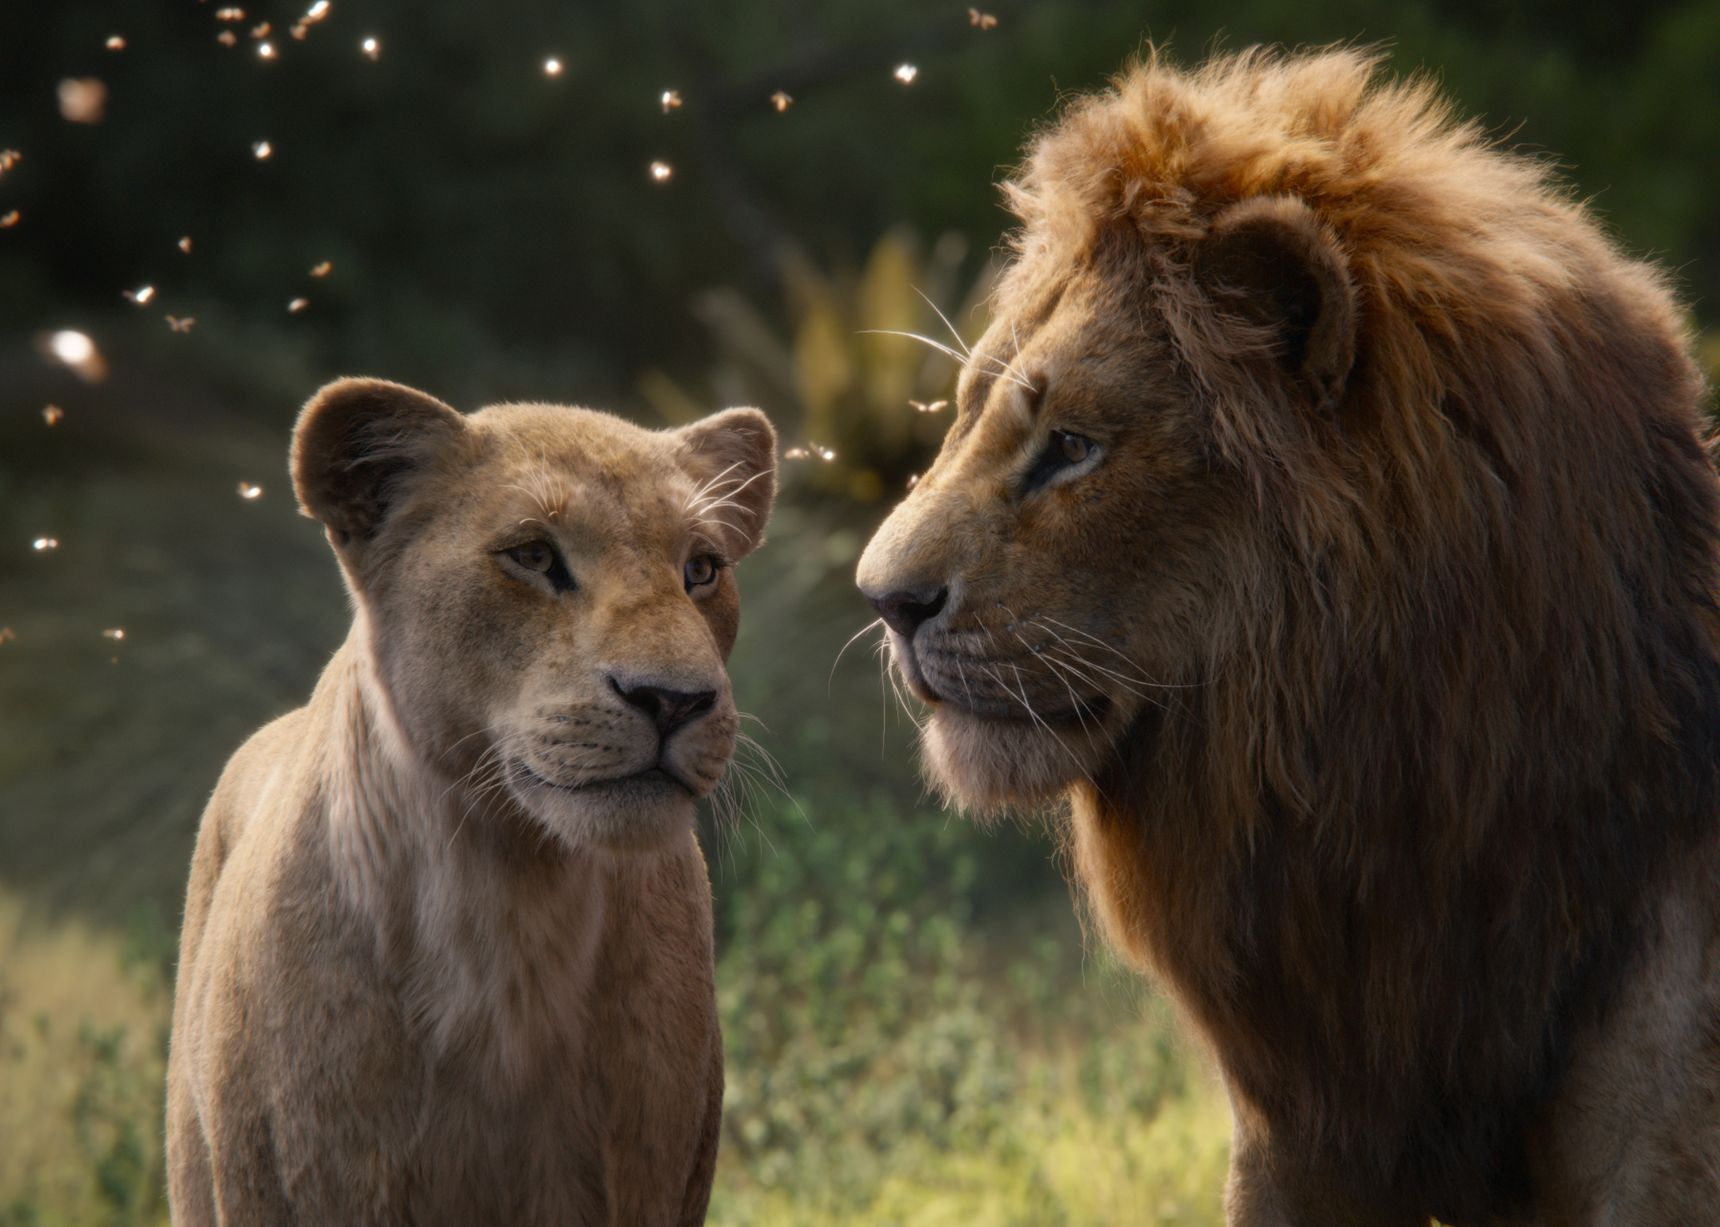 The love story between Nala and Simba.